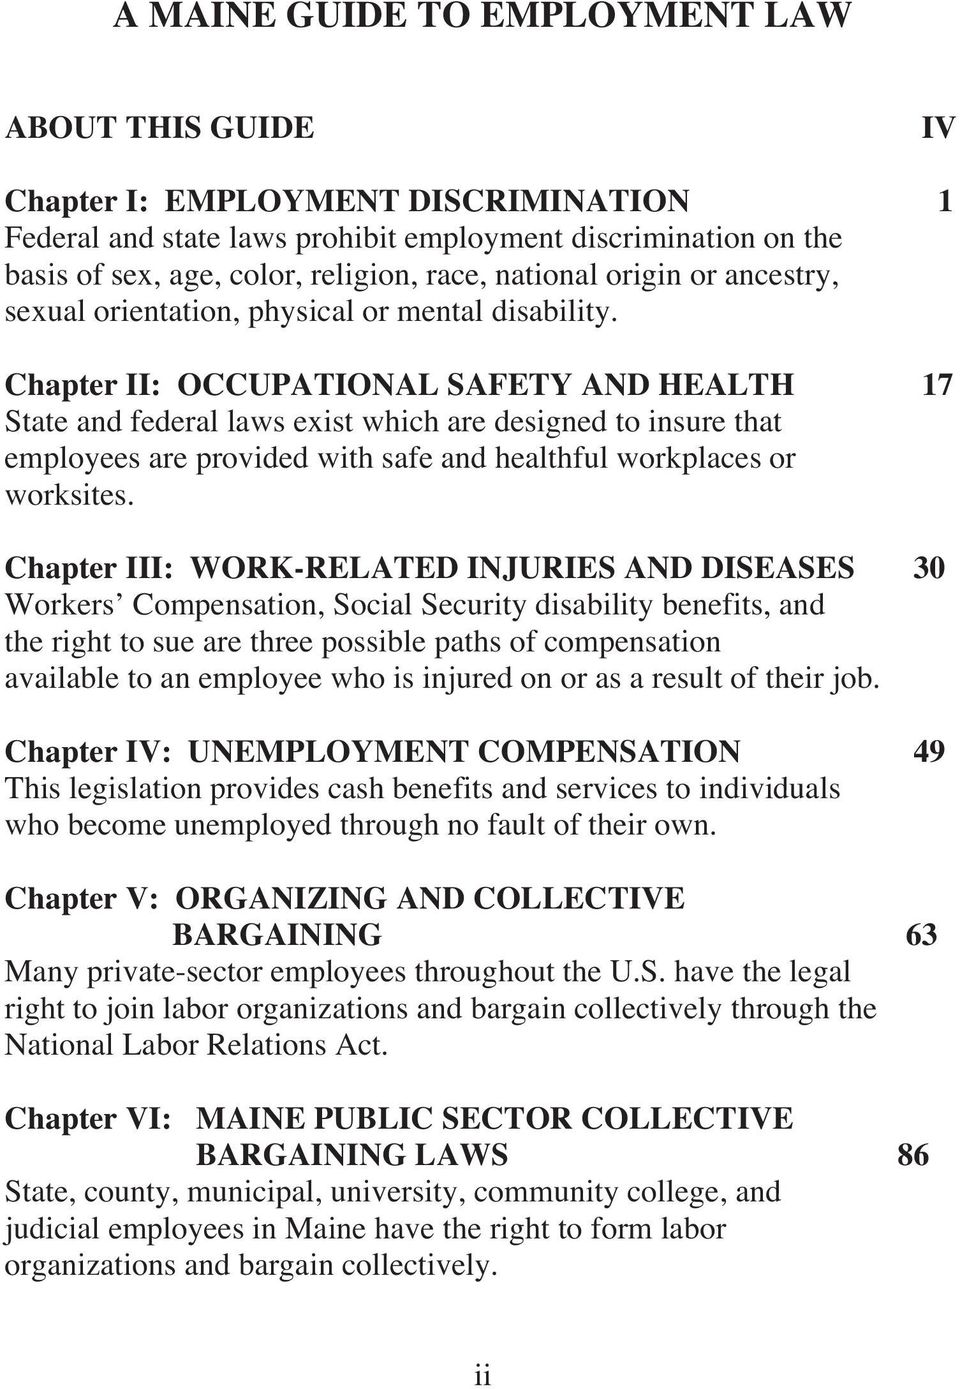 Chapter II: OCCUPATIONAL SAFETY AND HEALTH 17 State and federal laws exist which are designed to insure that employees are provided with safe and healthful workplaces or worksites.